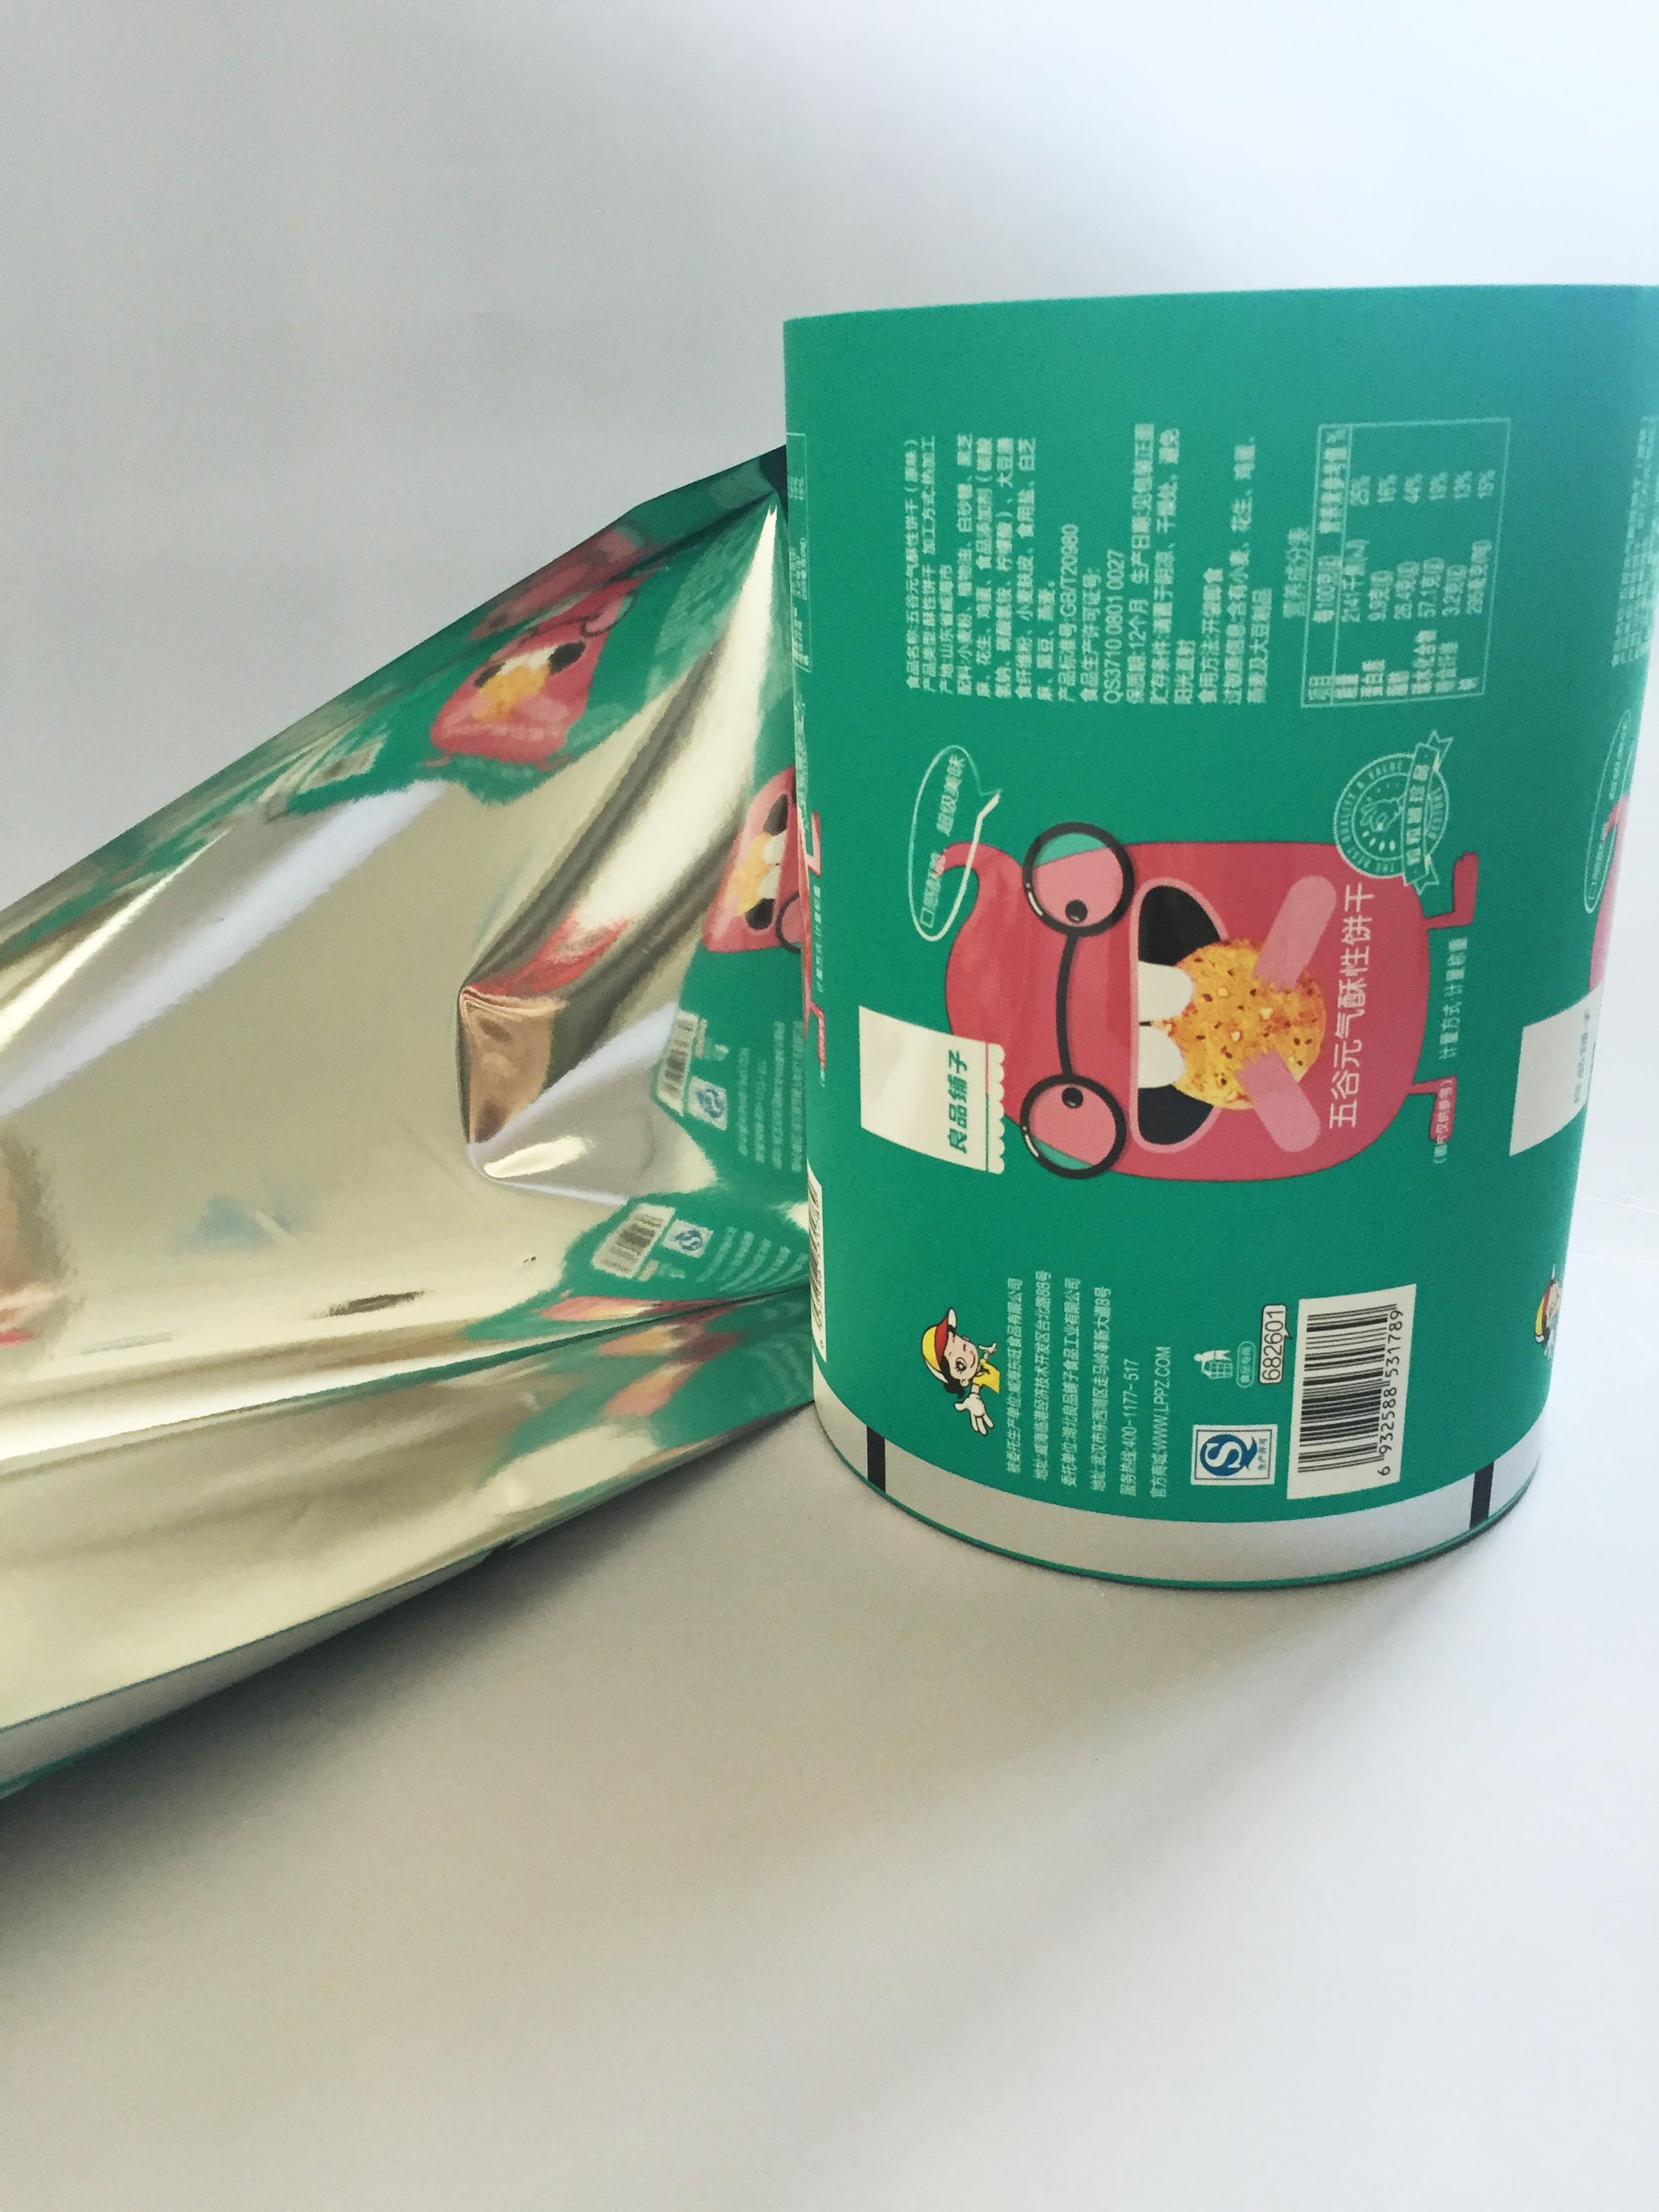 Food Grade Laminated Rewind Film Gravure Printing Plastic Packaging Rollstock Film